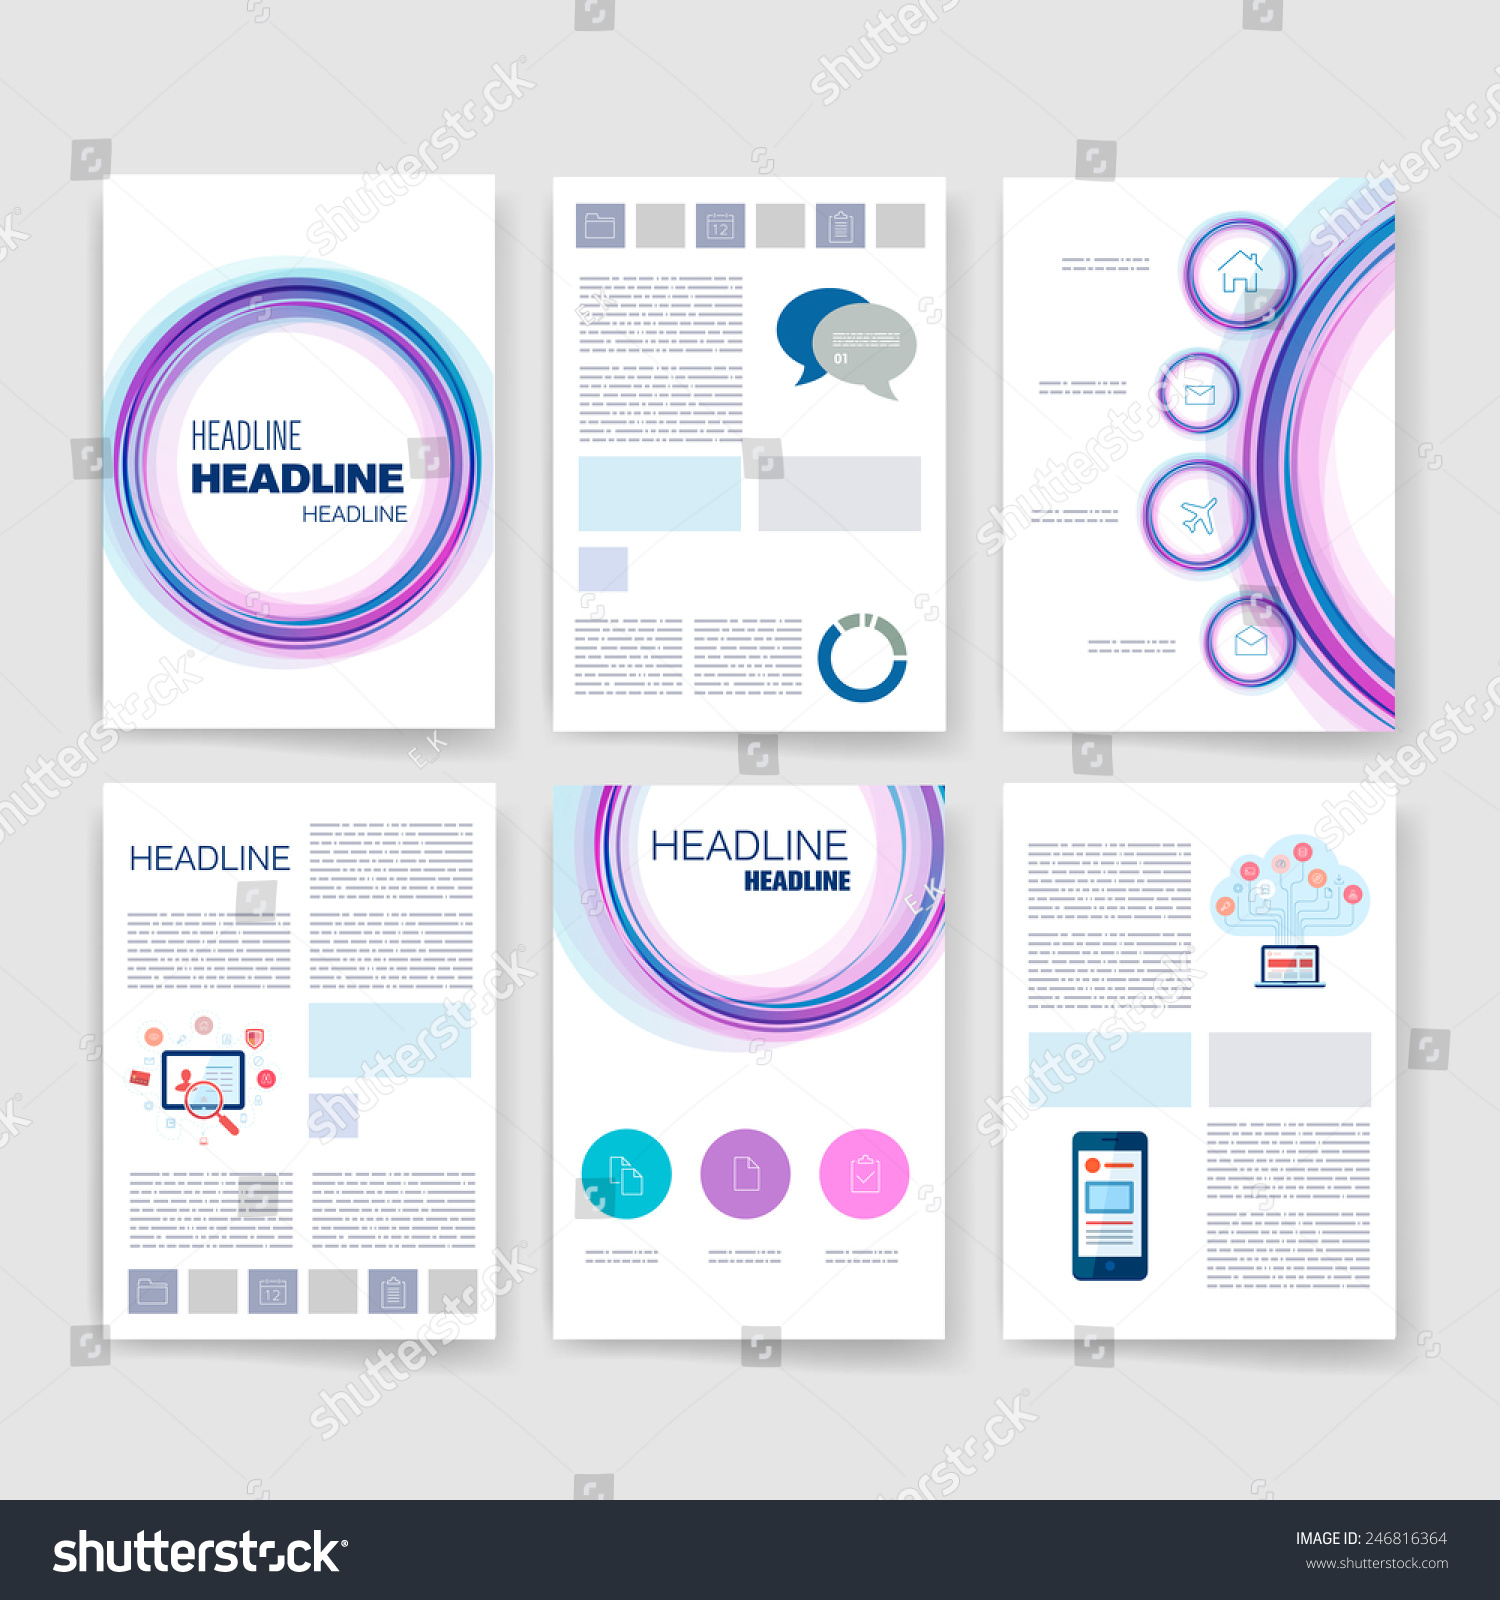 Templates Applications Infographic Concept Flyer Brochure Stock Vector Royalty Free 246816364